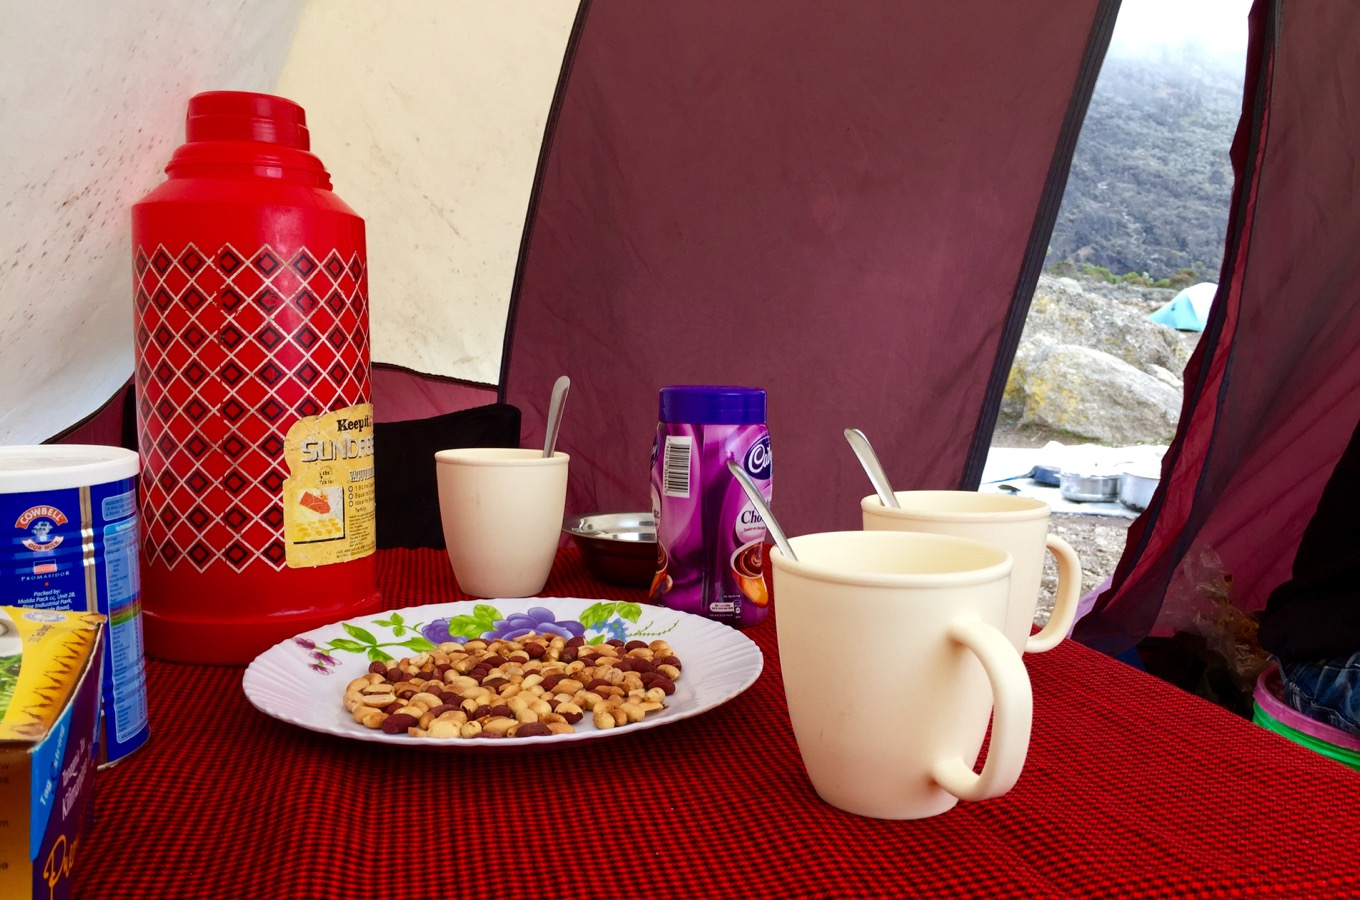 Afternoon snack during climb of Mount Kilimanjaro